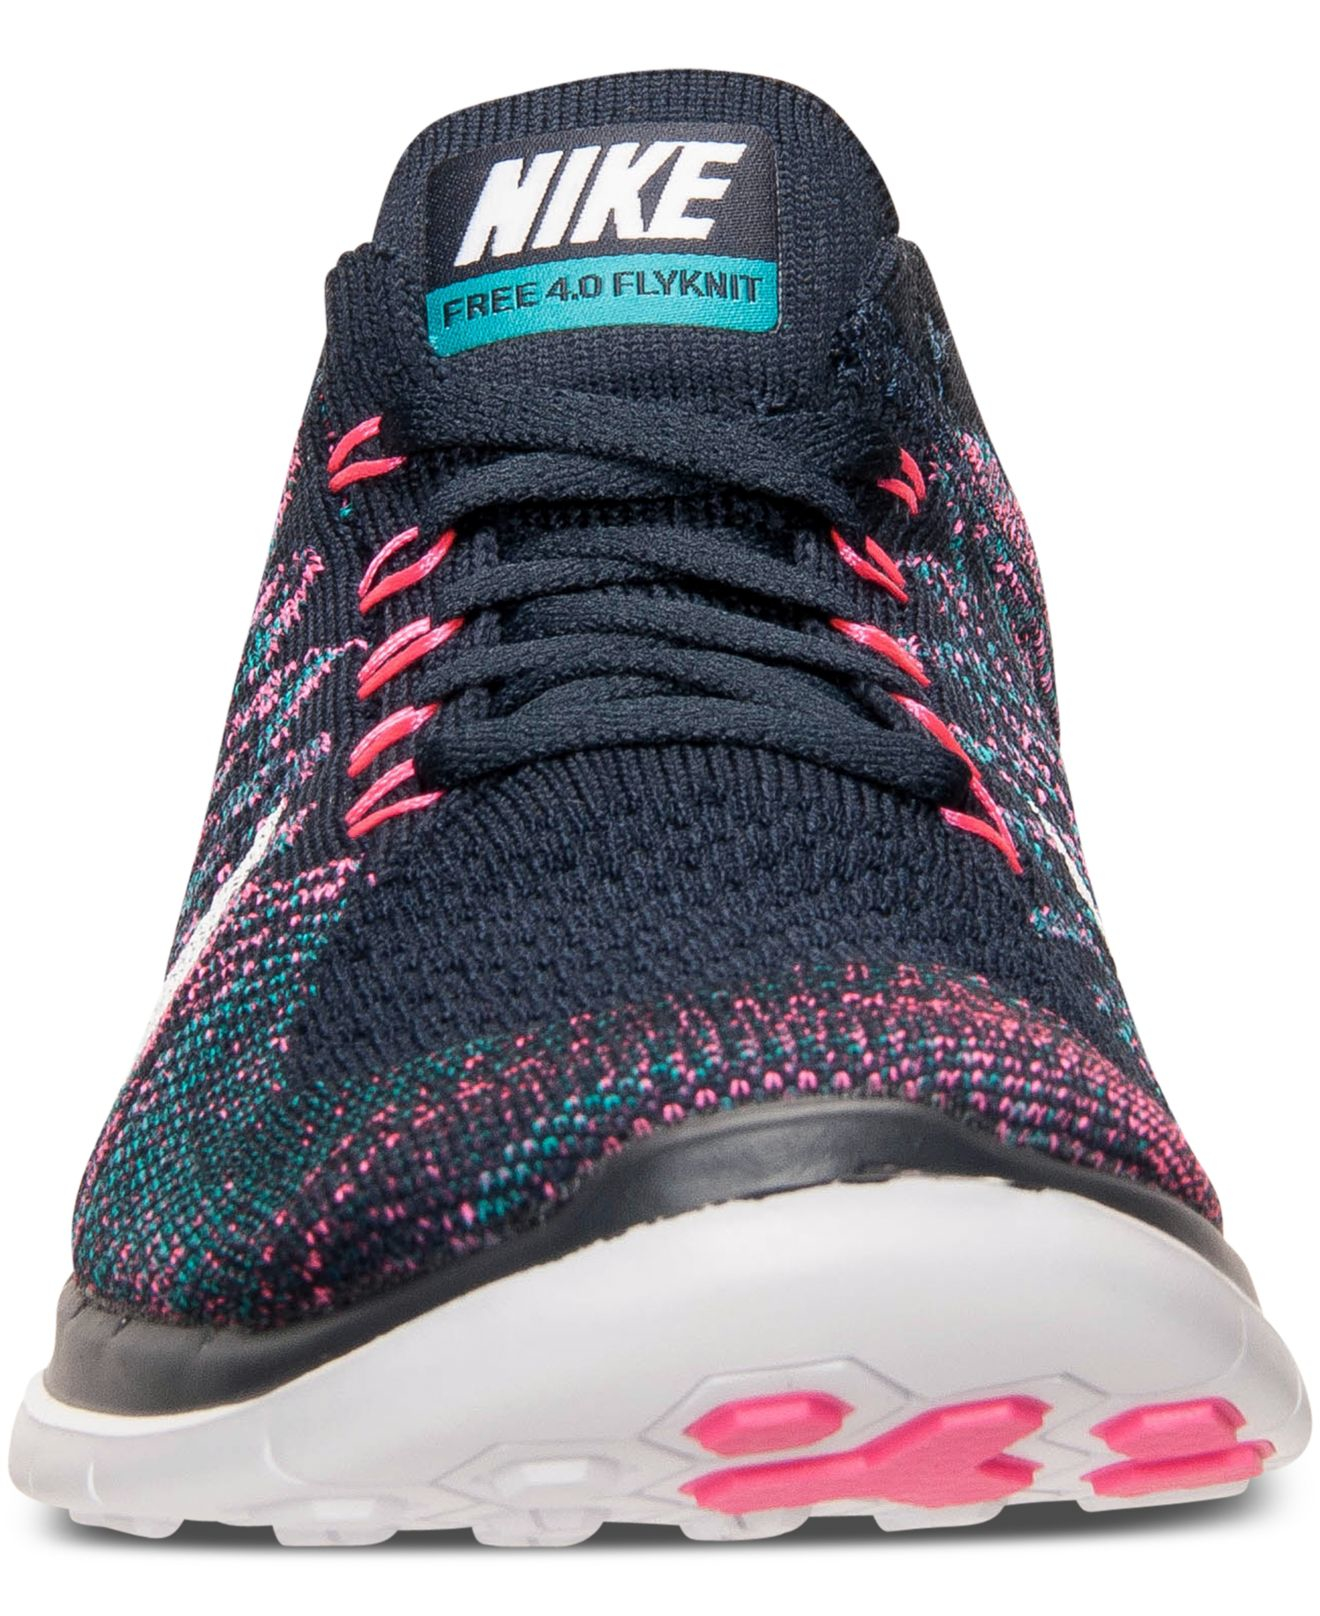 Lyst - Nike Women s Free Flyknit 4.0 Running Sneakers From Finish ... 7c5429a0e